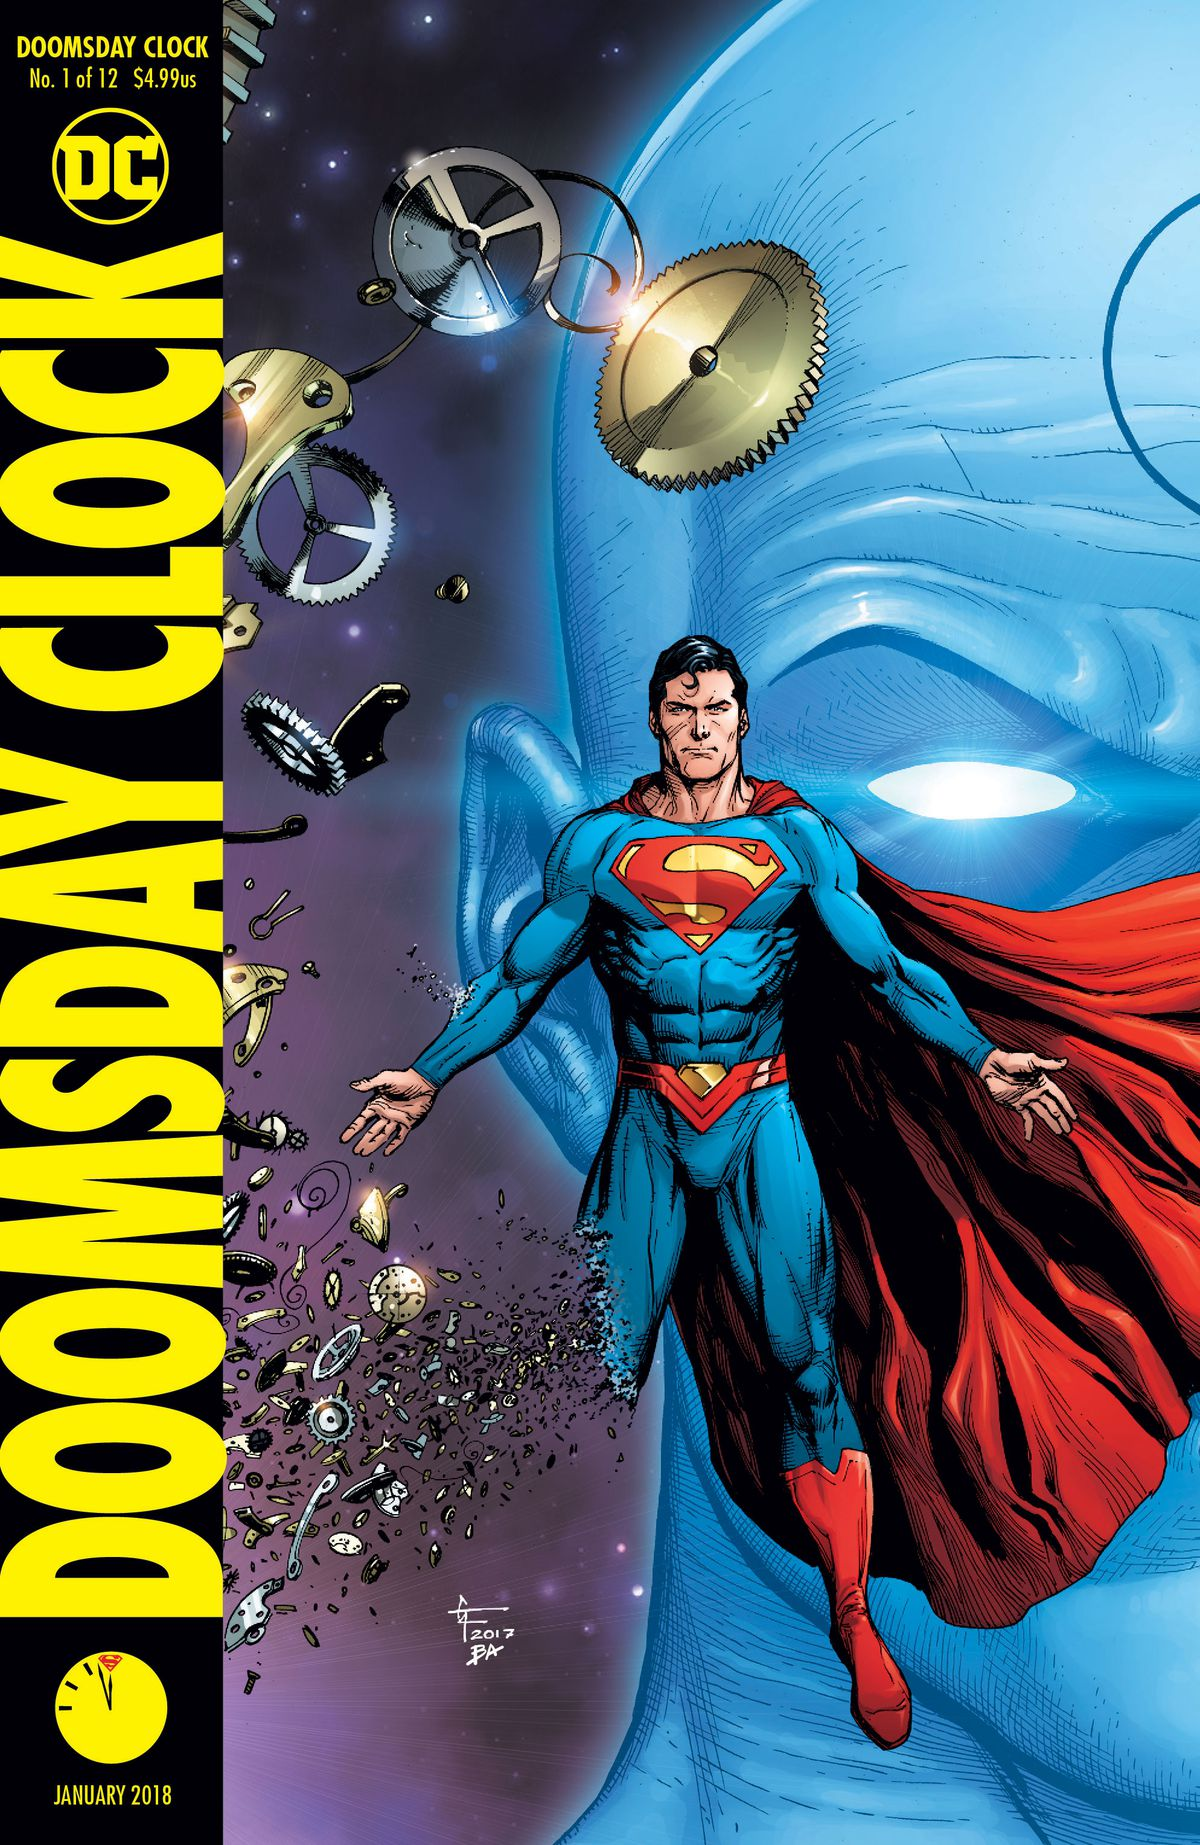 Dc S Watchmen Sequel Doomsday Clock Can T Match The Hbo Show In